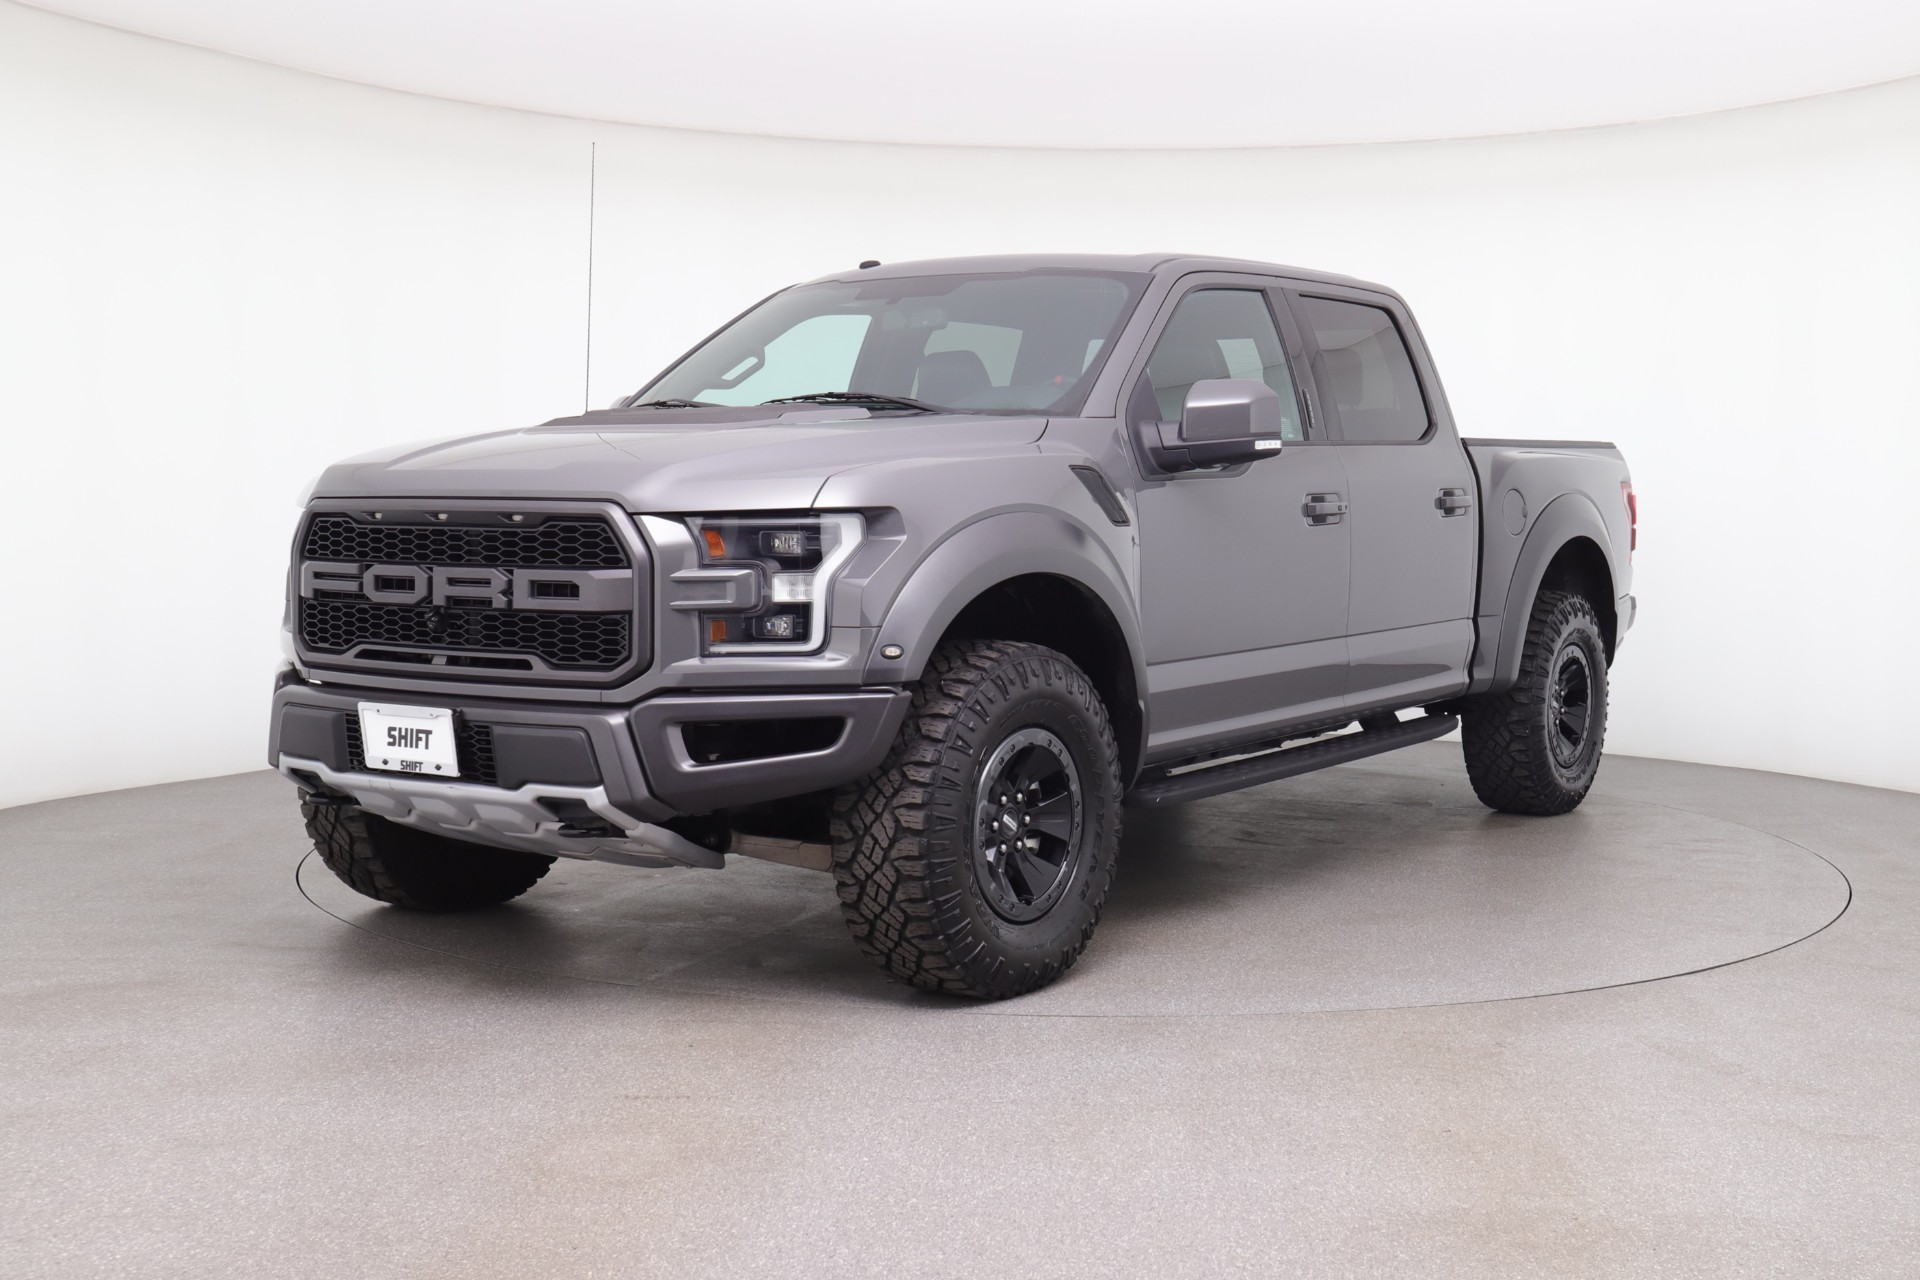 2018 Ford F-150 Raptor (from $65,950)